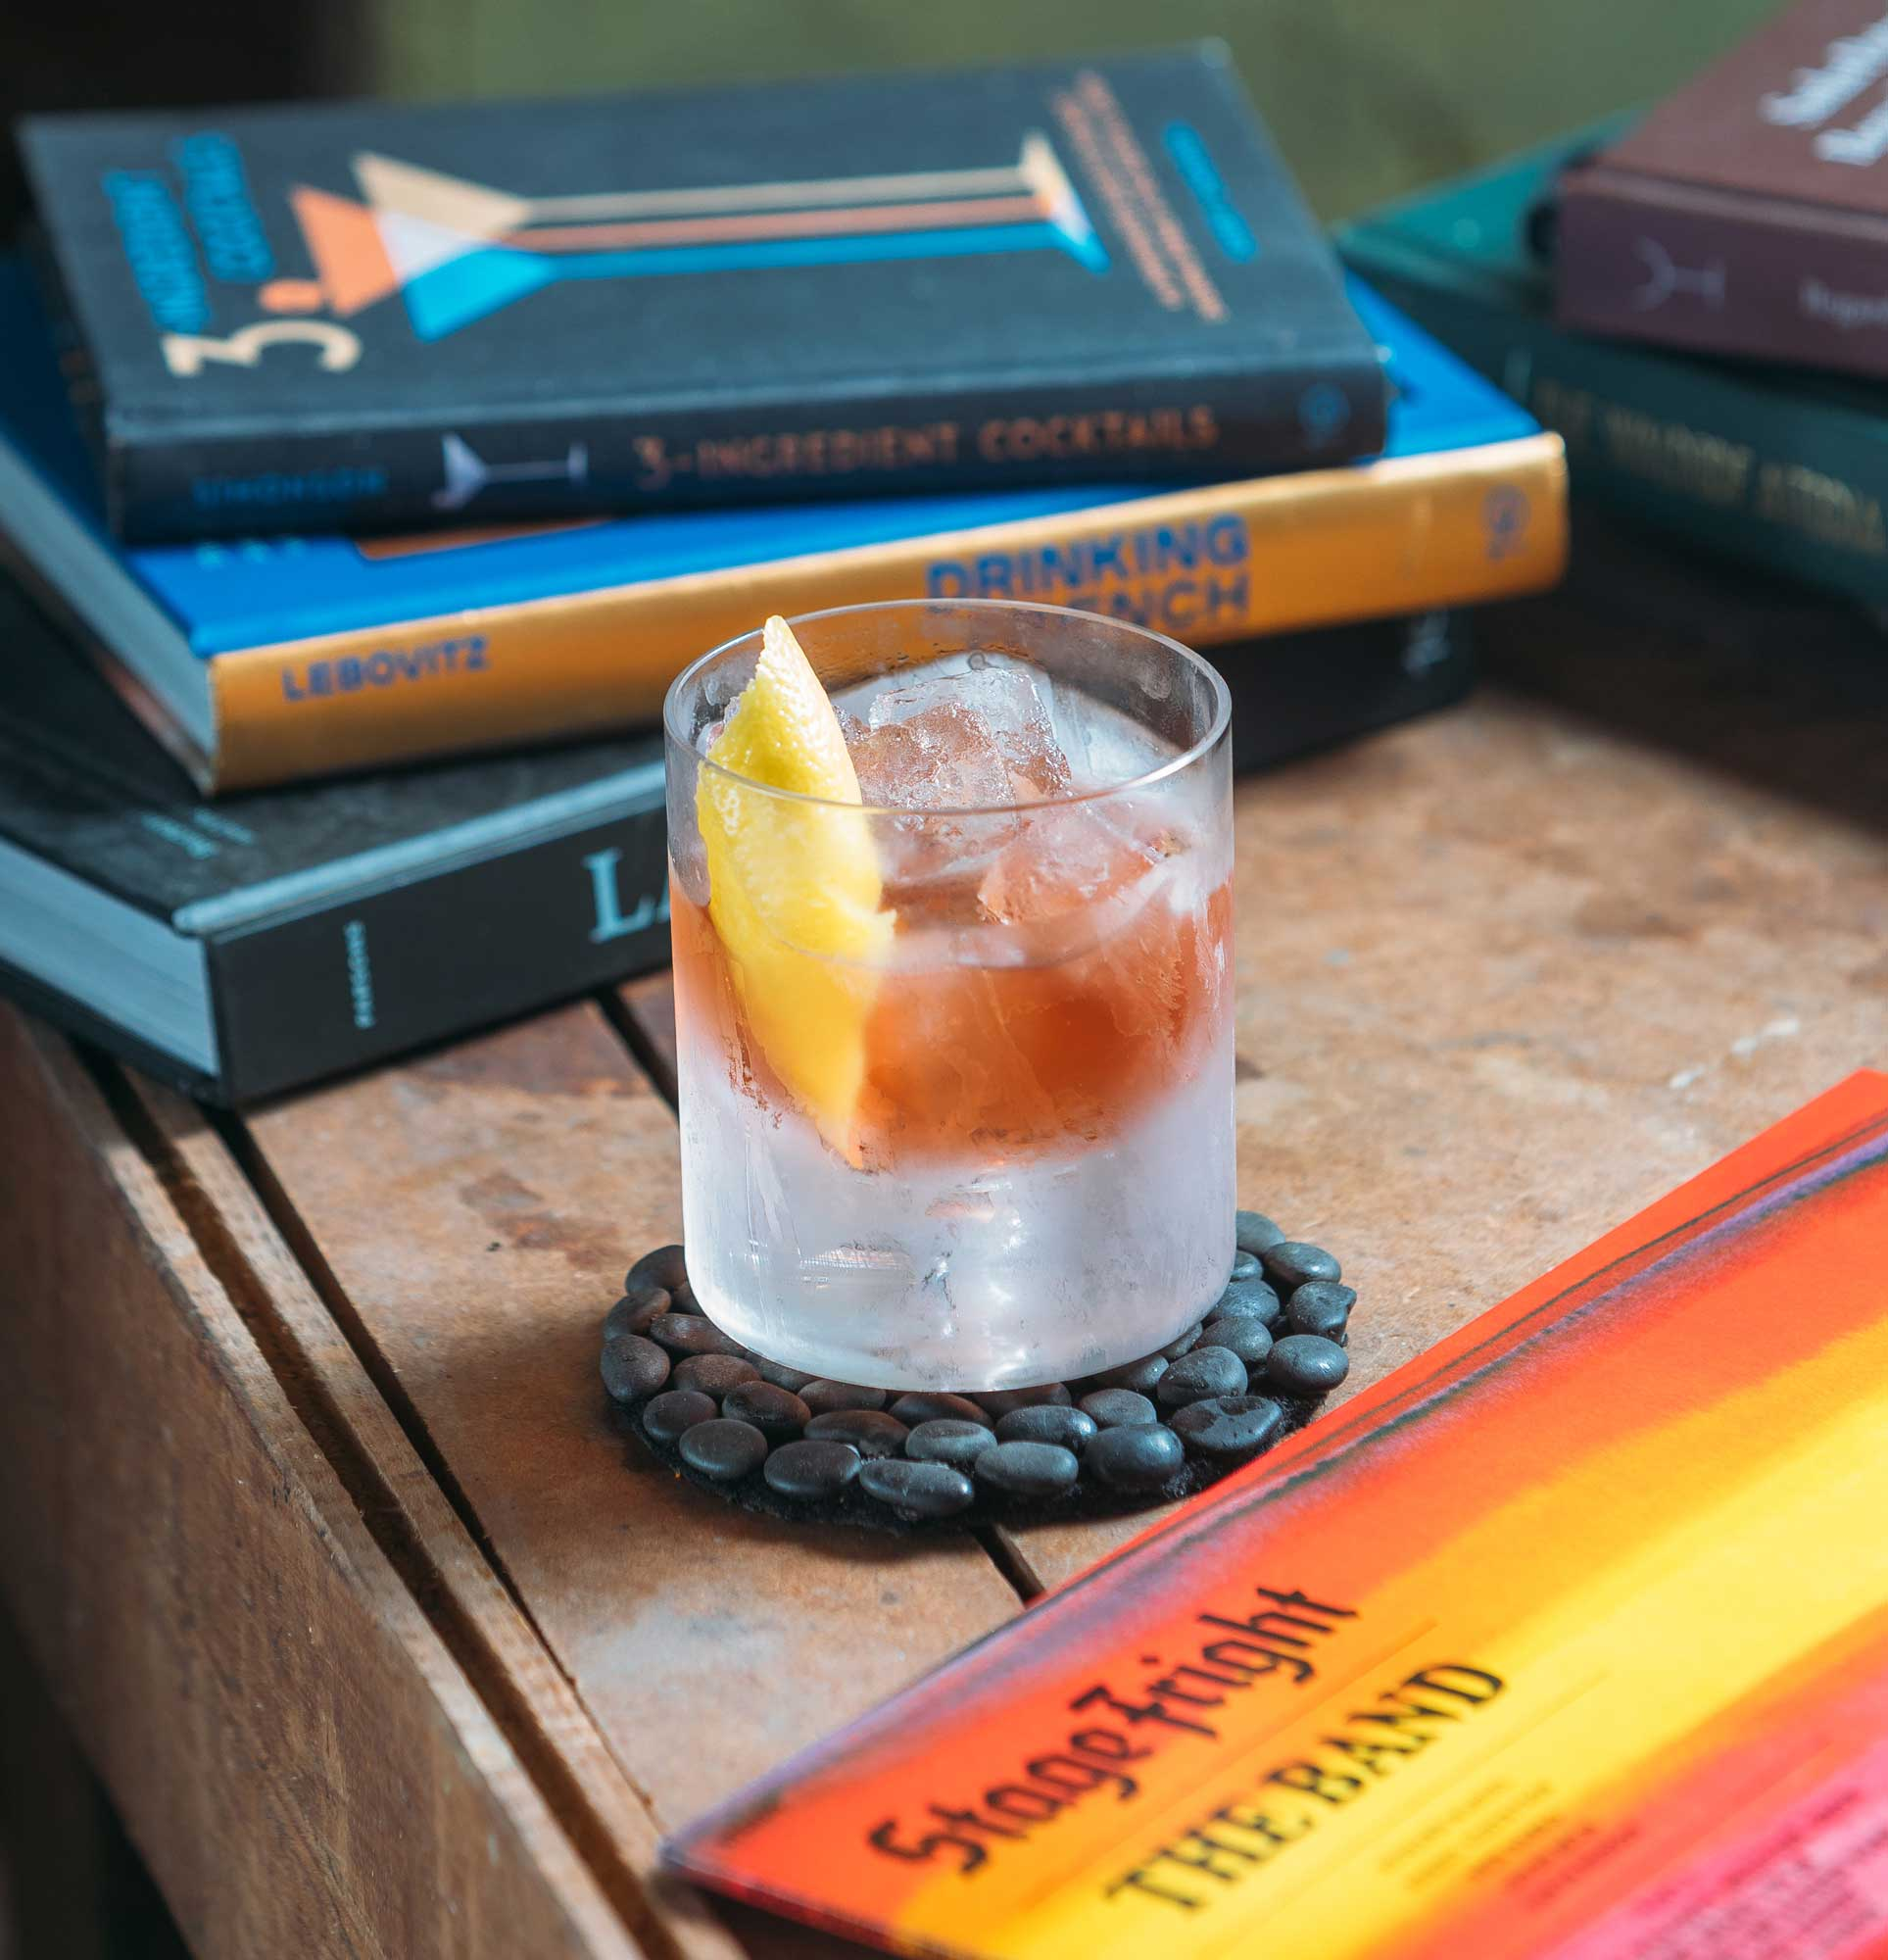 An example of the Violet Negroni, the mixed drink (cocktail) featuring Hayman's London Dry Gin, Byrrh Grand Quinquina, and Salers Gentian Apéritif; photo by S. Kallstrand